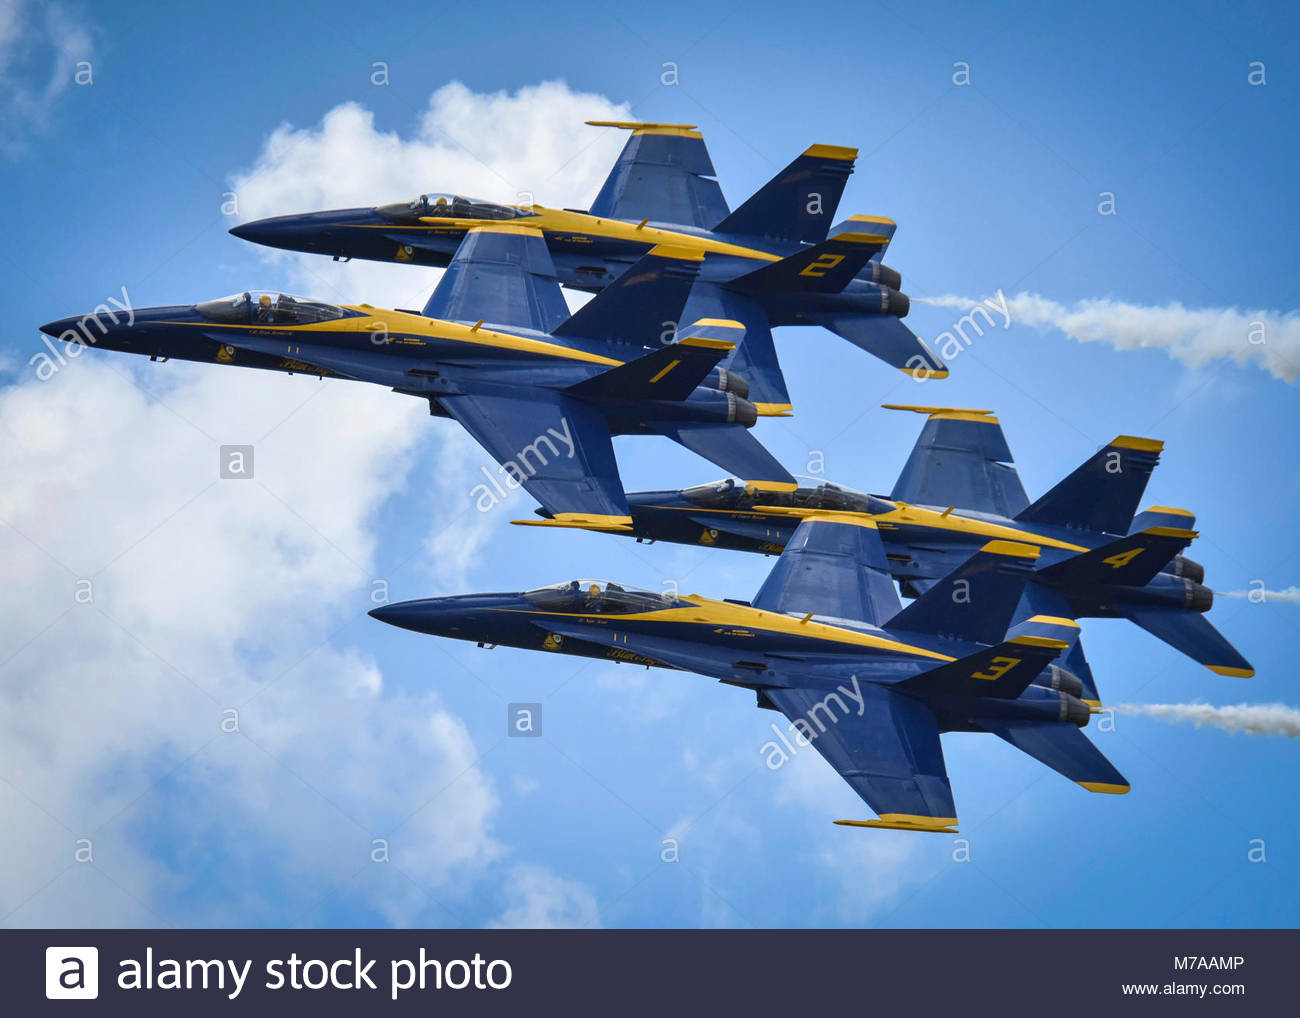 April 22, 2017) The U.S. Navy flight demonstration team, the Blue Angels, fly in formation over Naval Air Station Stock Photo